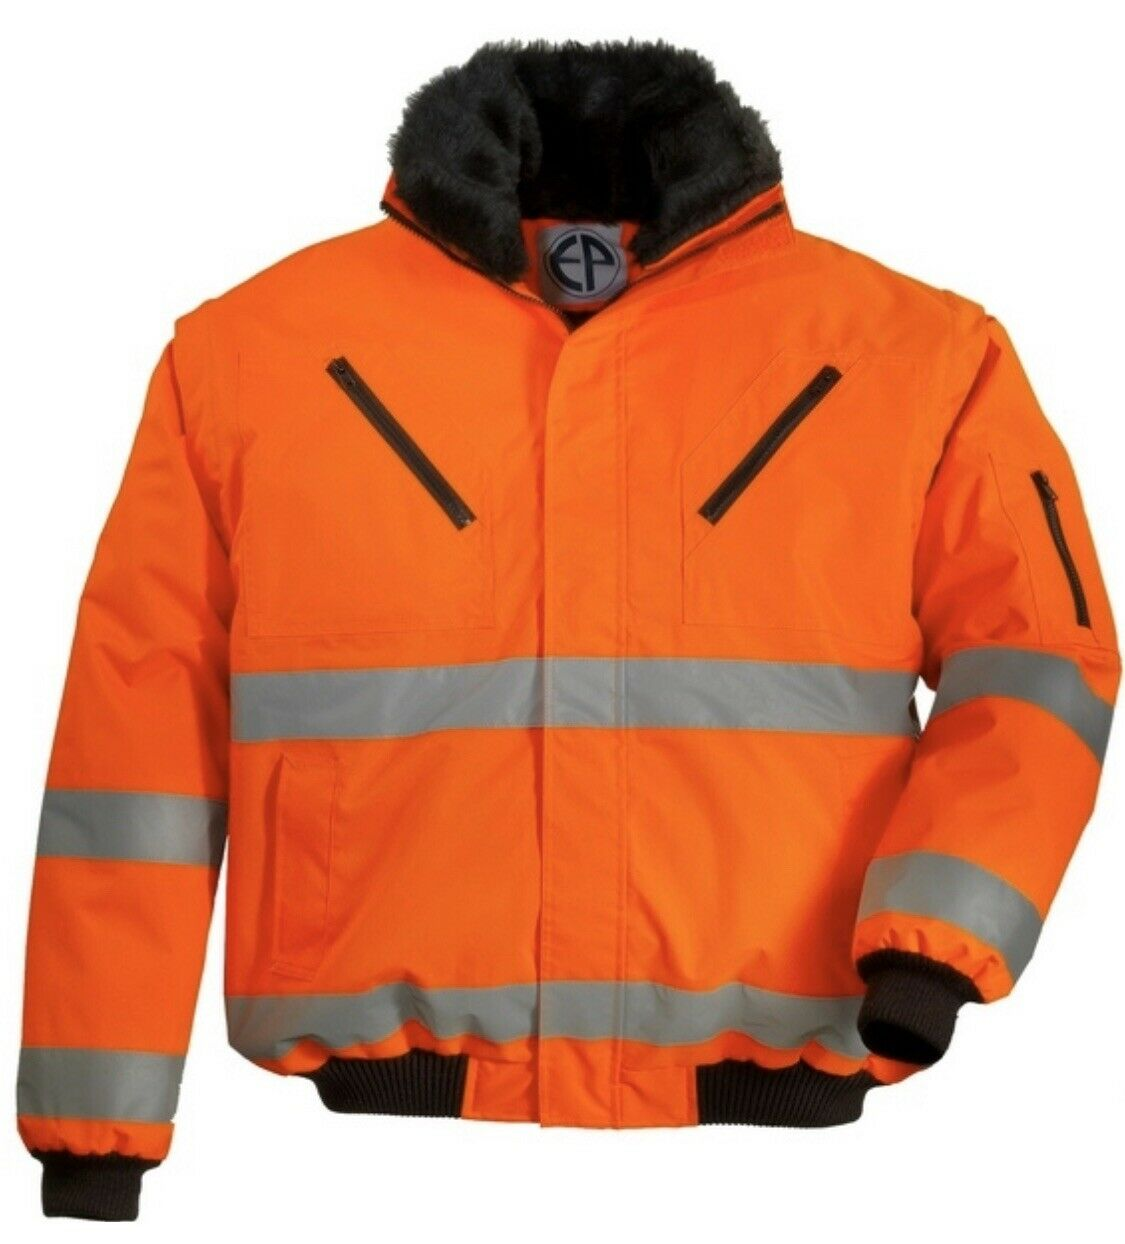 Warnjacke Arbeitsjacke 4 in 1 wasserdichte Pilotenjacke gefüttert  in orange